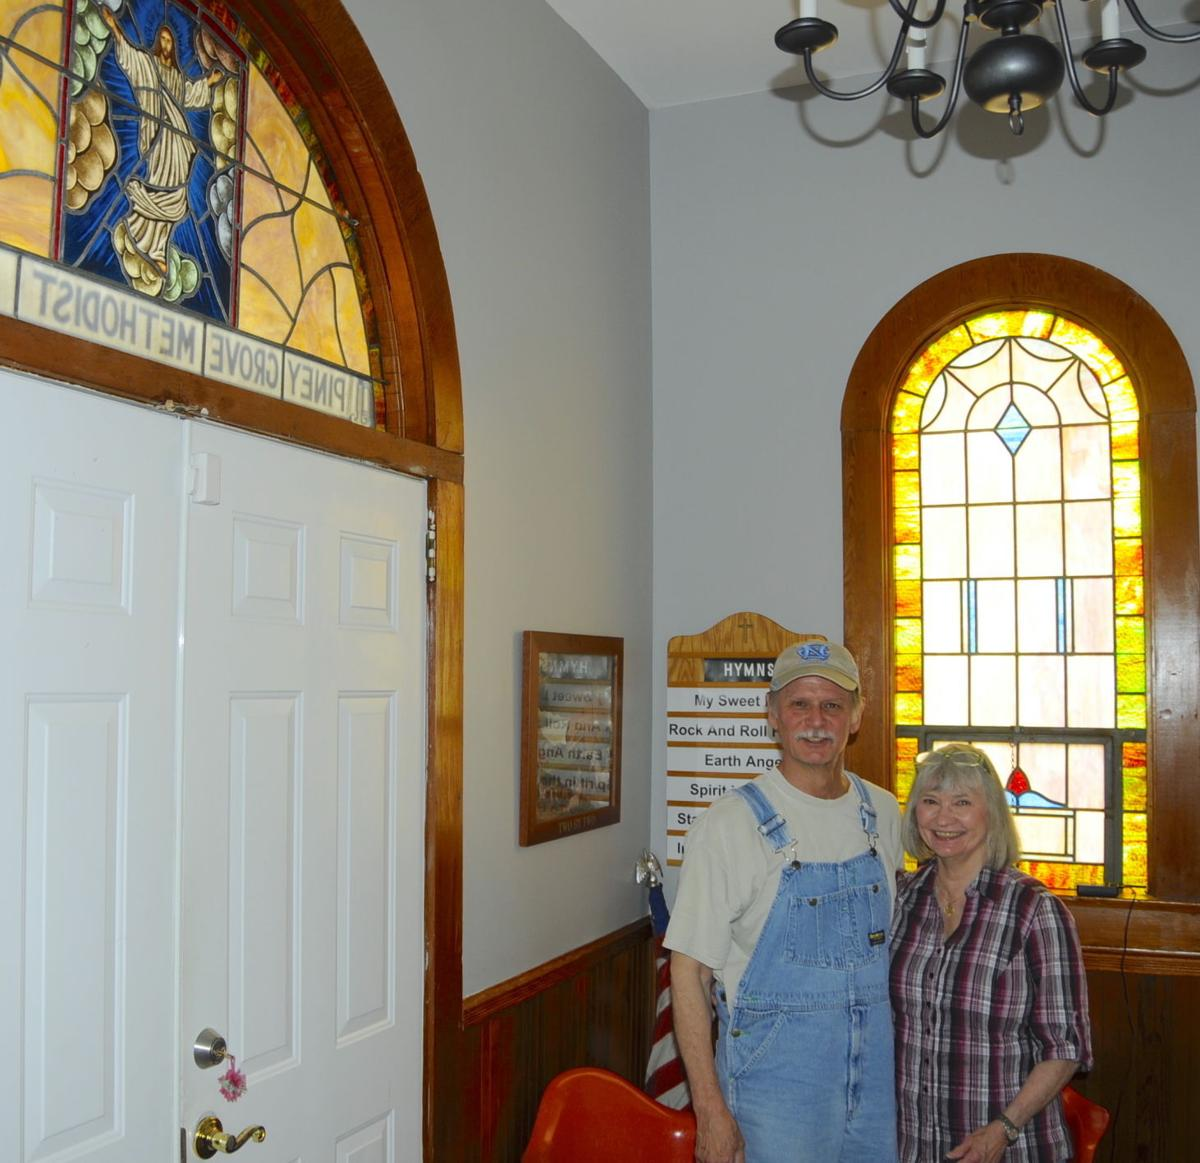 At home in former church